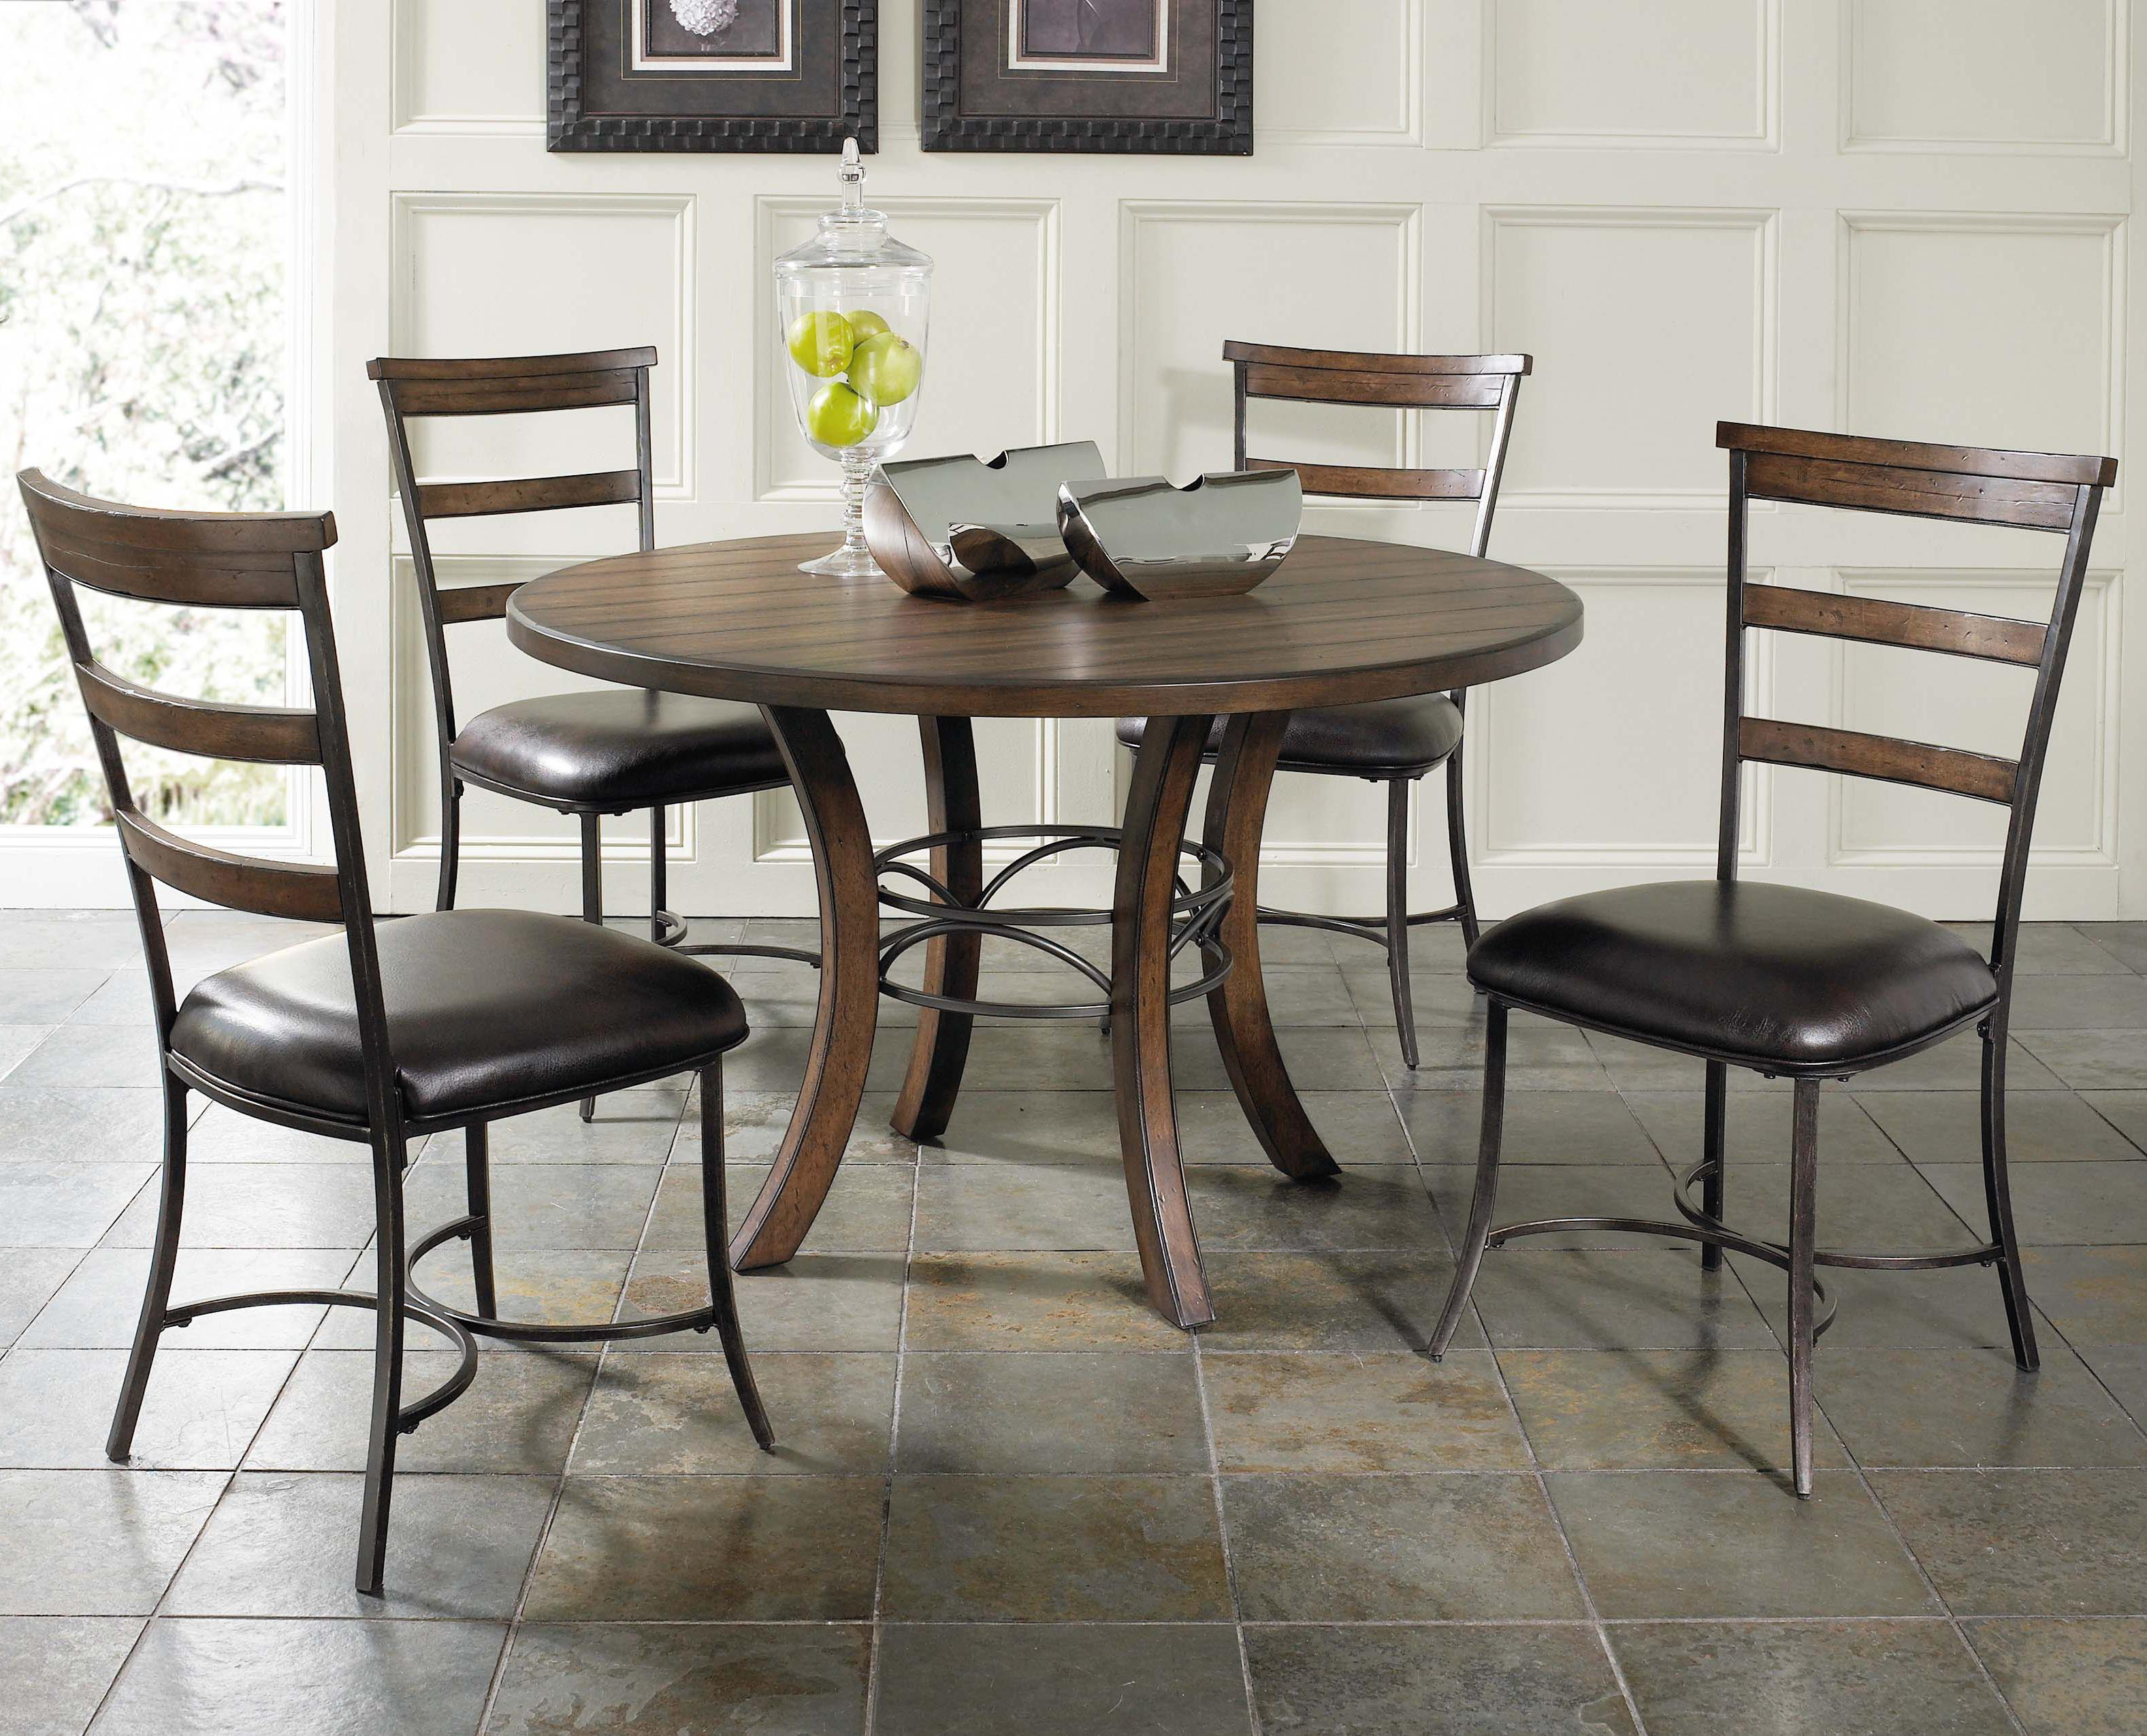 Hillsdale Cameron 5 Piece Metal Ring Dining Set - Item Number: 4671-814+815+4x805